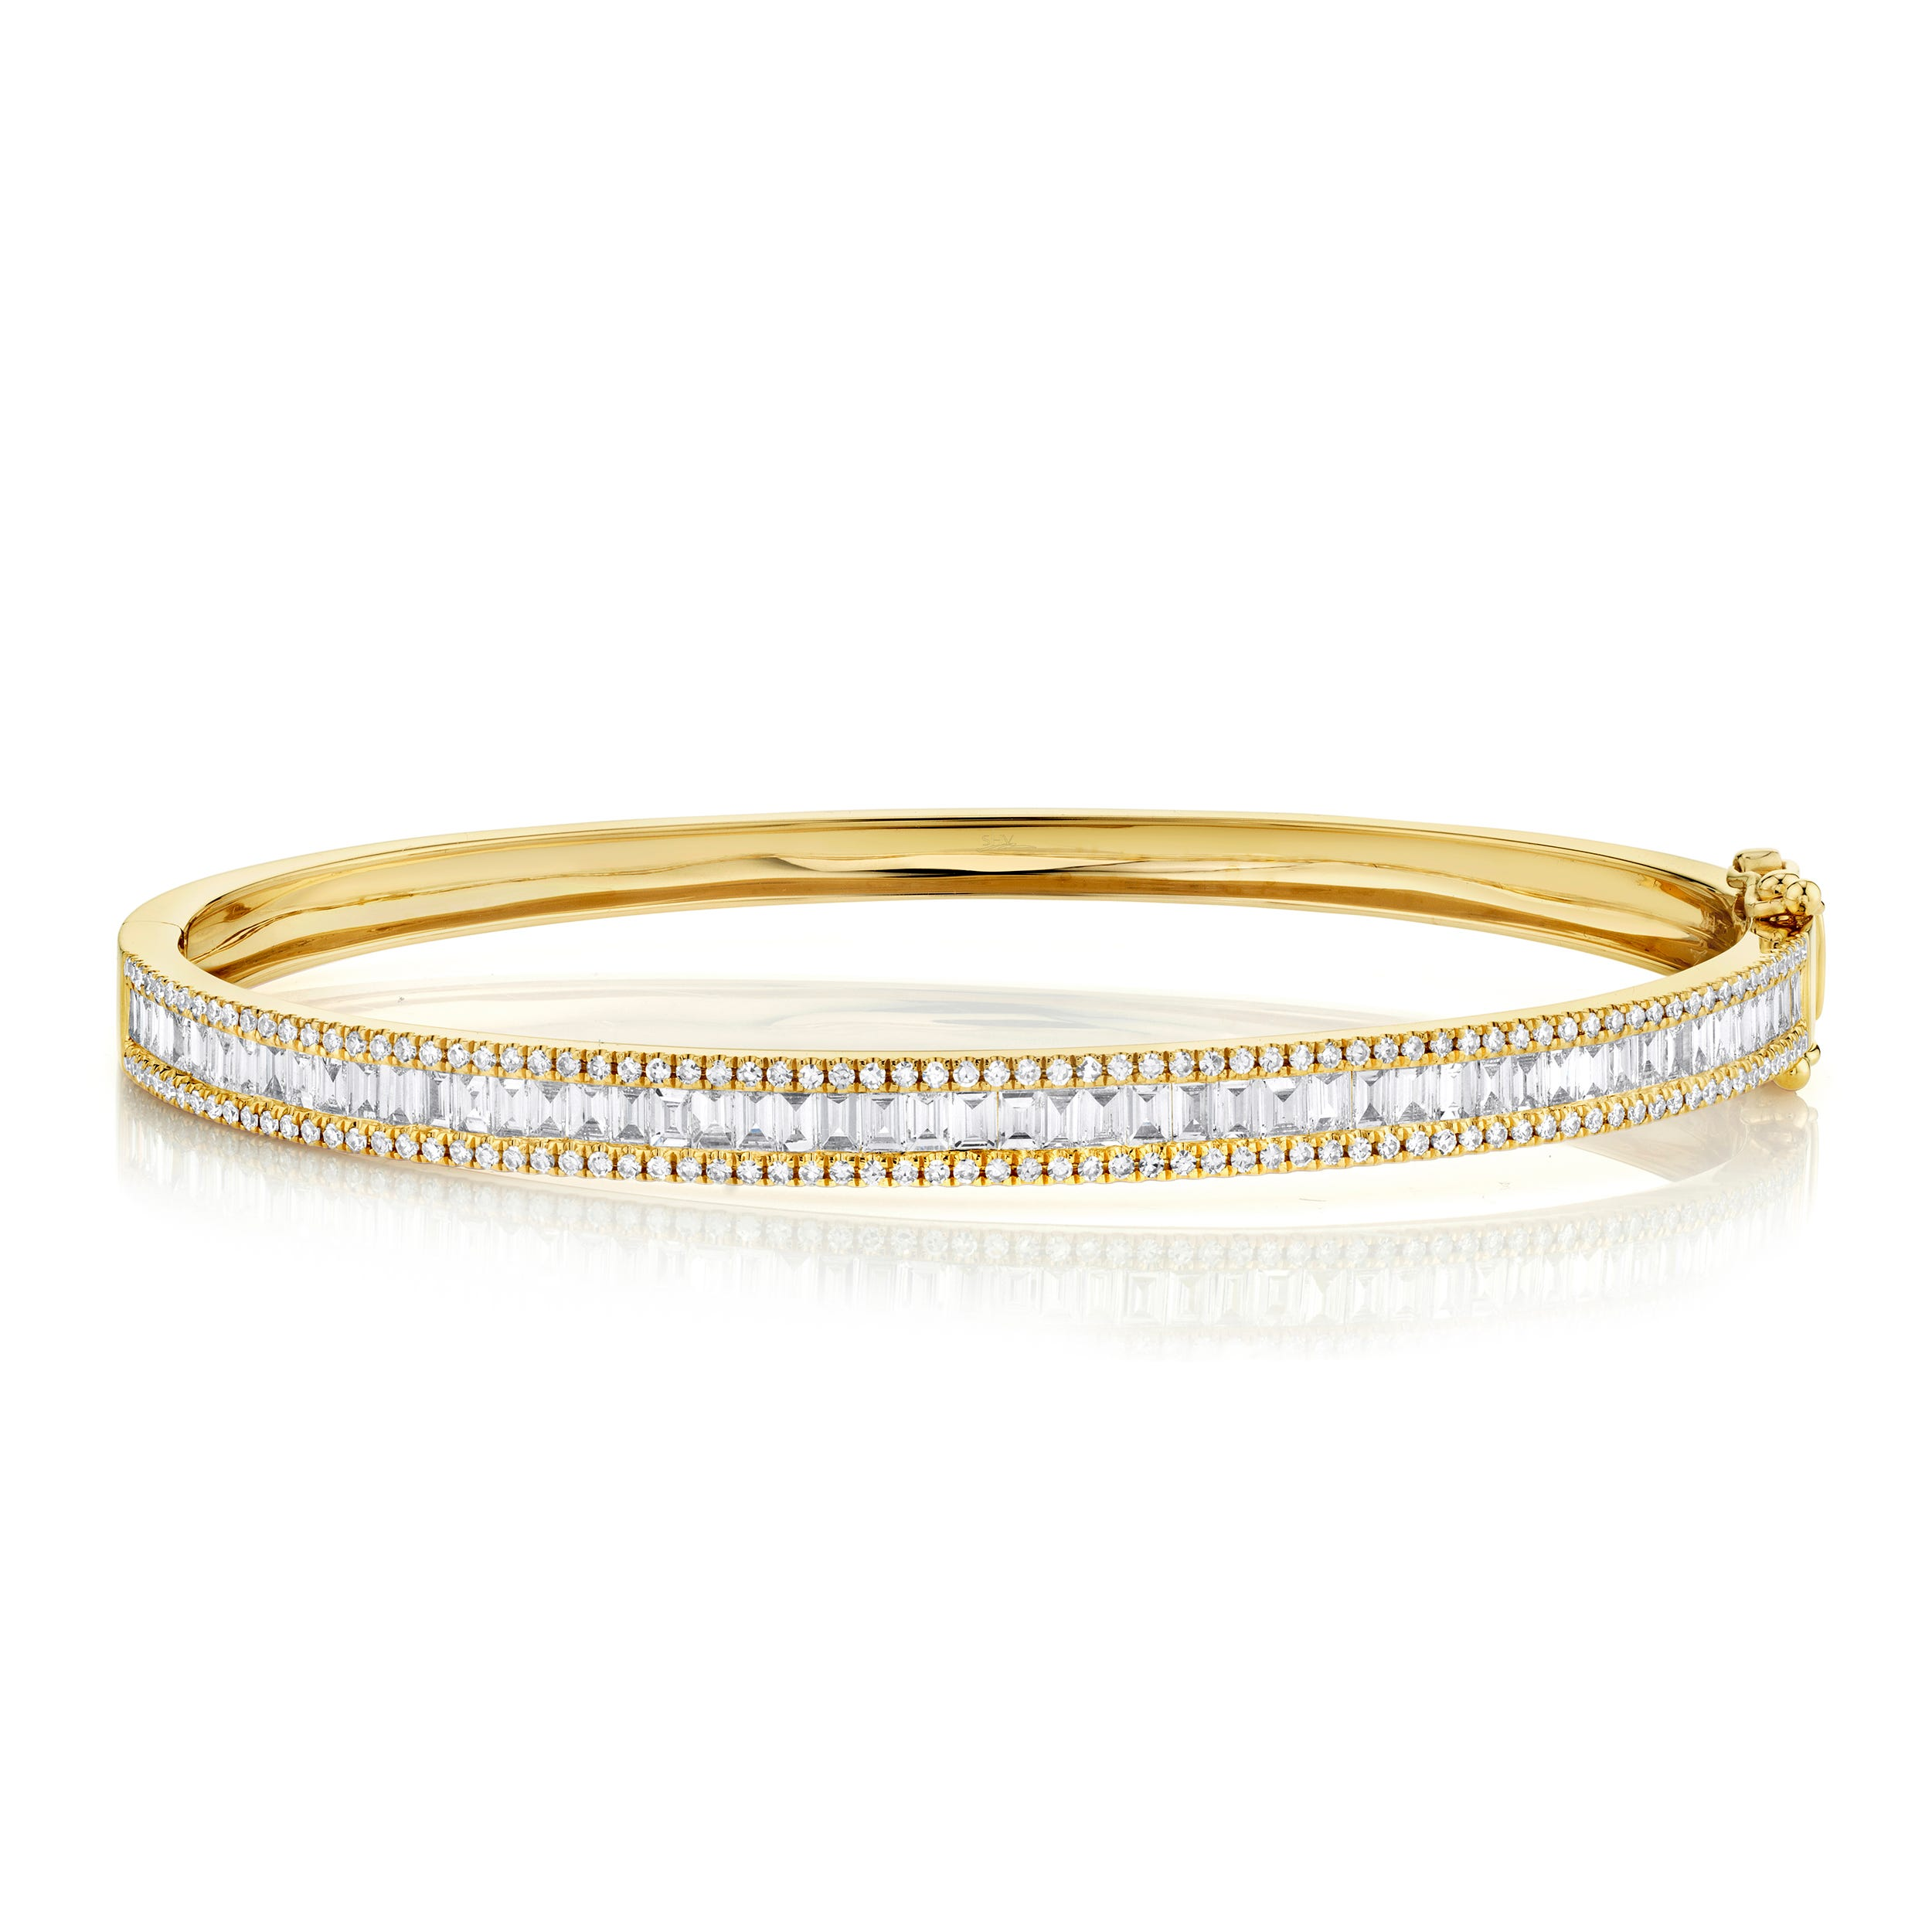 Shy Creation Diamond Baguette Bangle Bracelet in 14k Yellow Gold SC55004921ZS